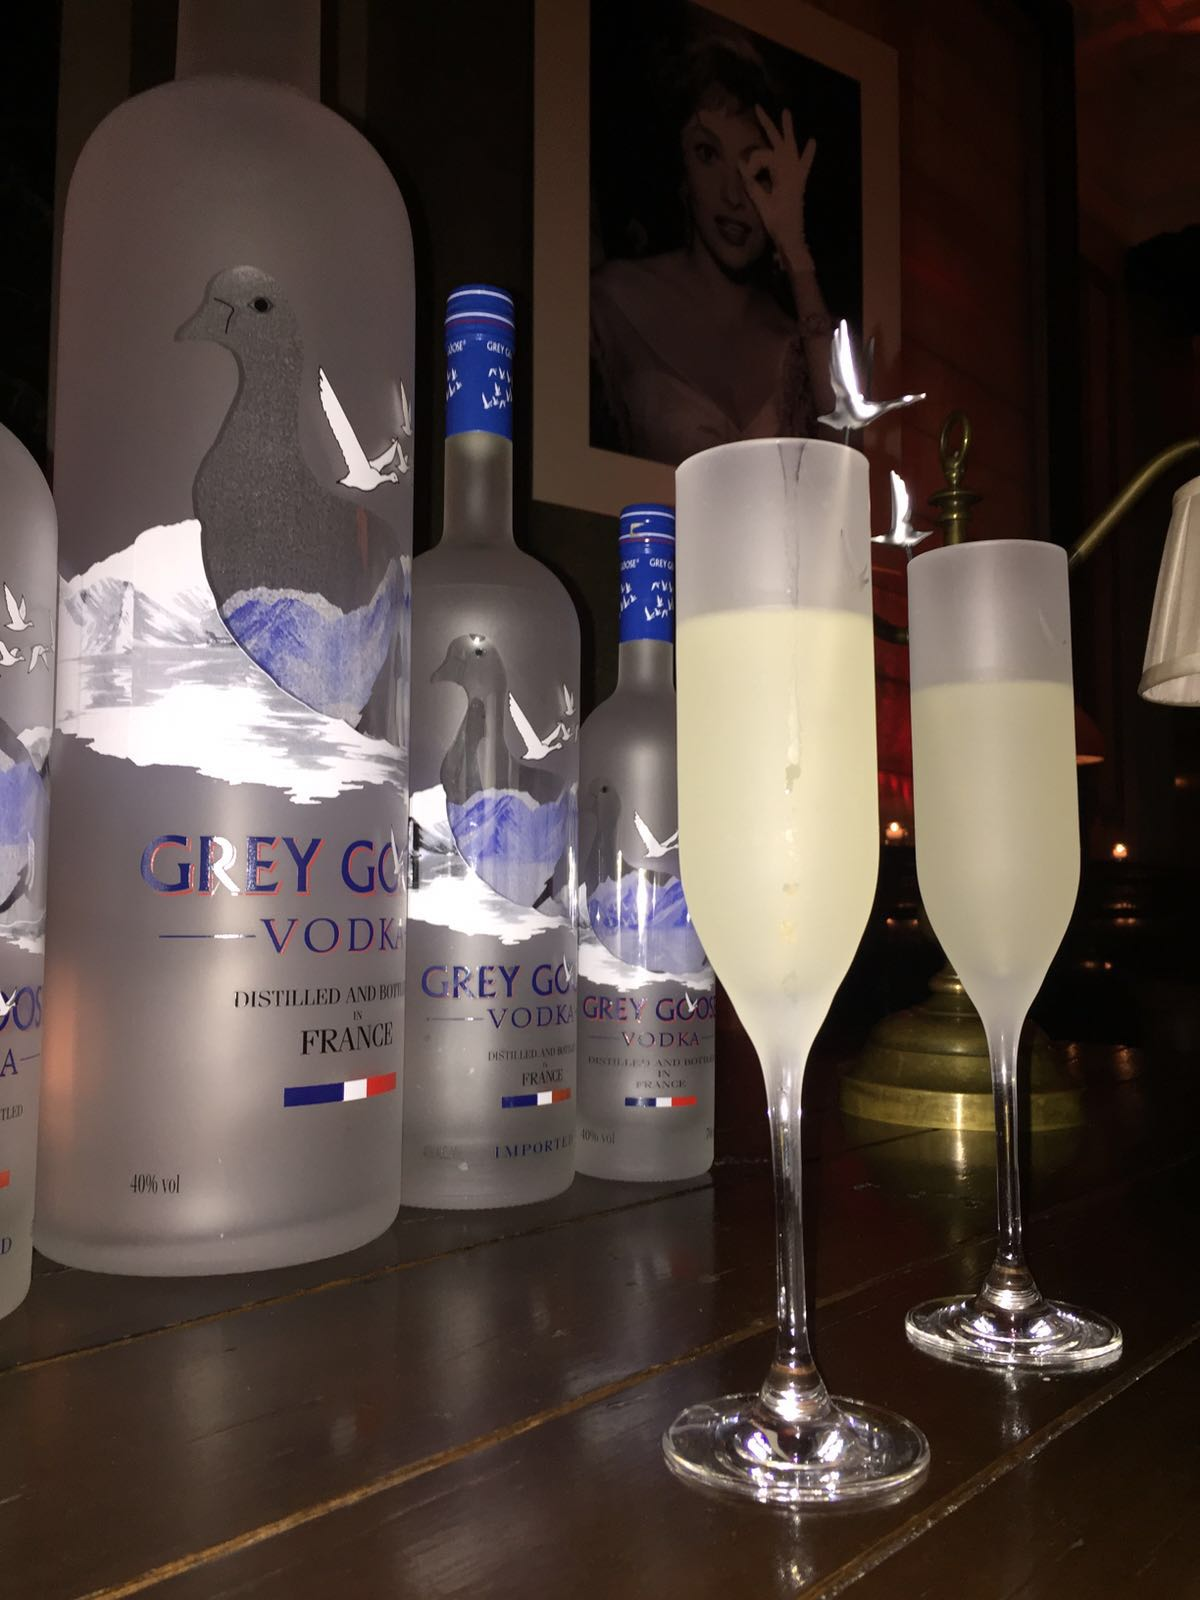 Grey Goose Le Fizz Cocktails and Grey Goose Magnums at the BAFTA's Harvey Weinstein Afterparty 2016